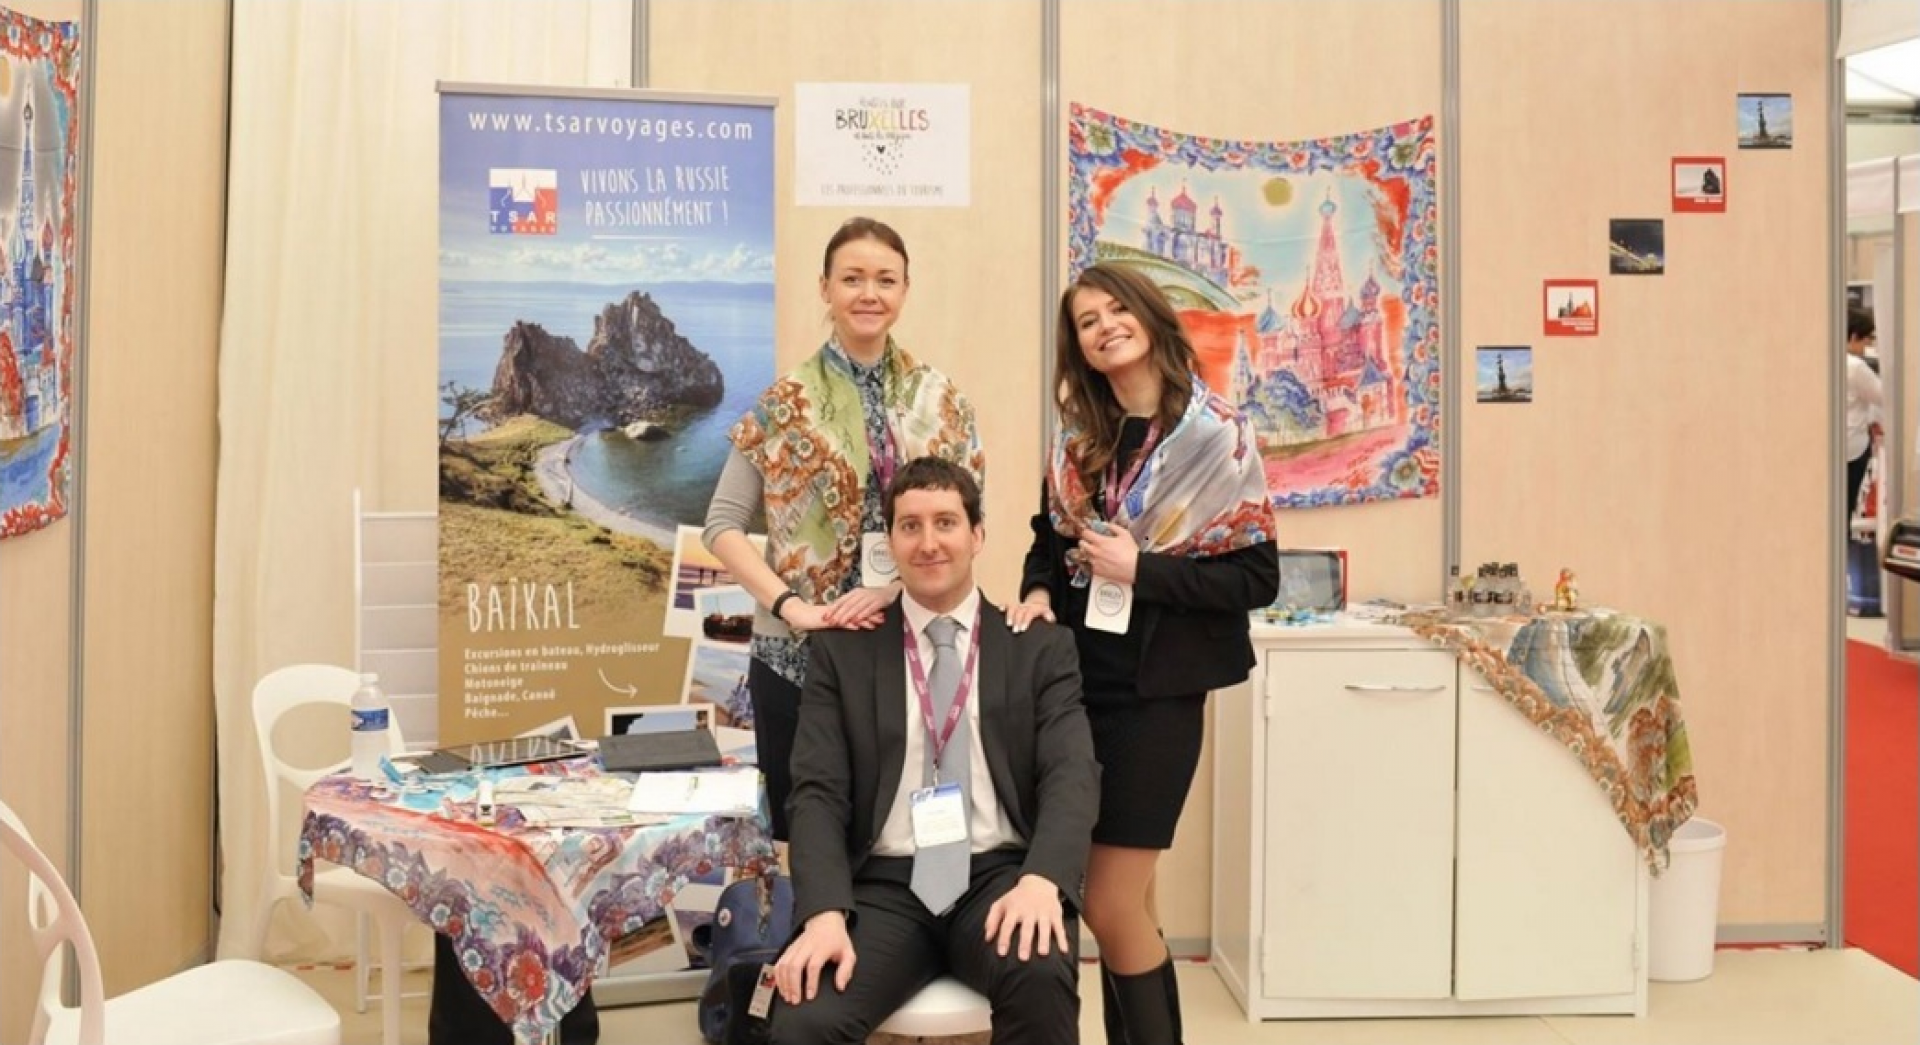 Stand Tsar Voyages